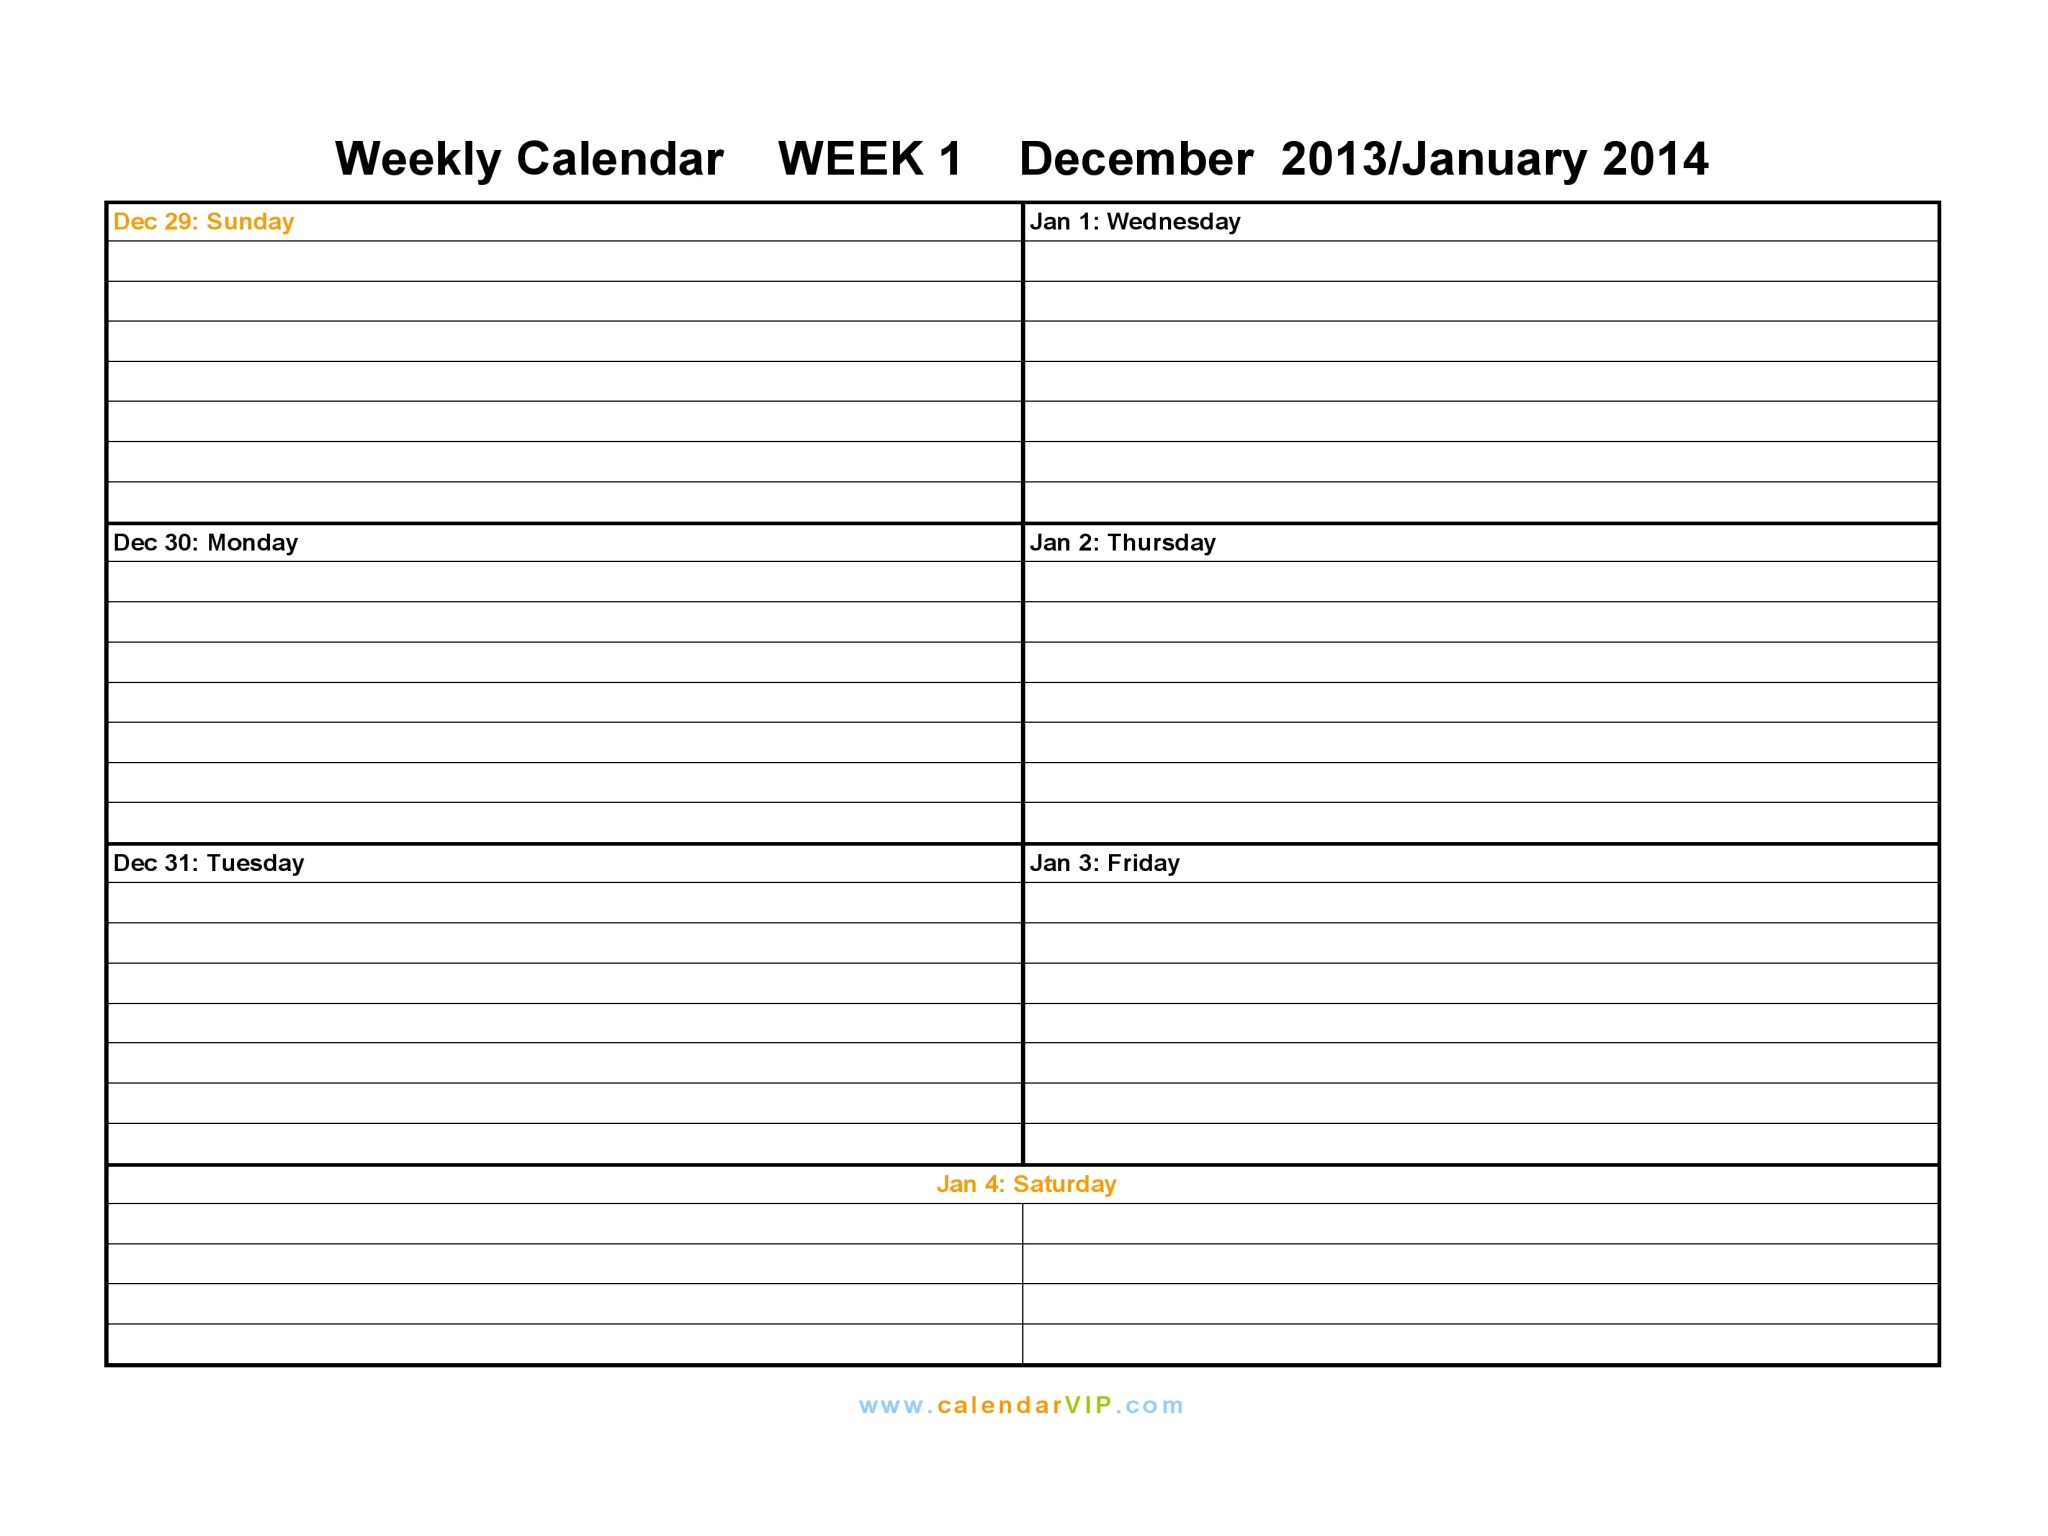 ... August 2014 Weekly Calendar Printable Free No Charge To Print Schedule